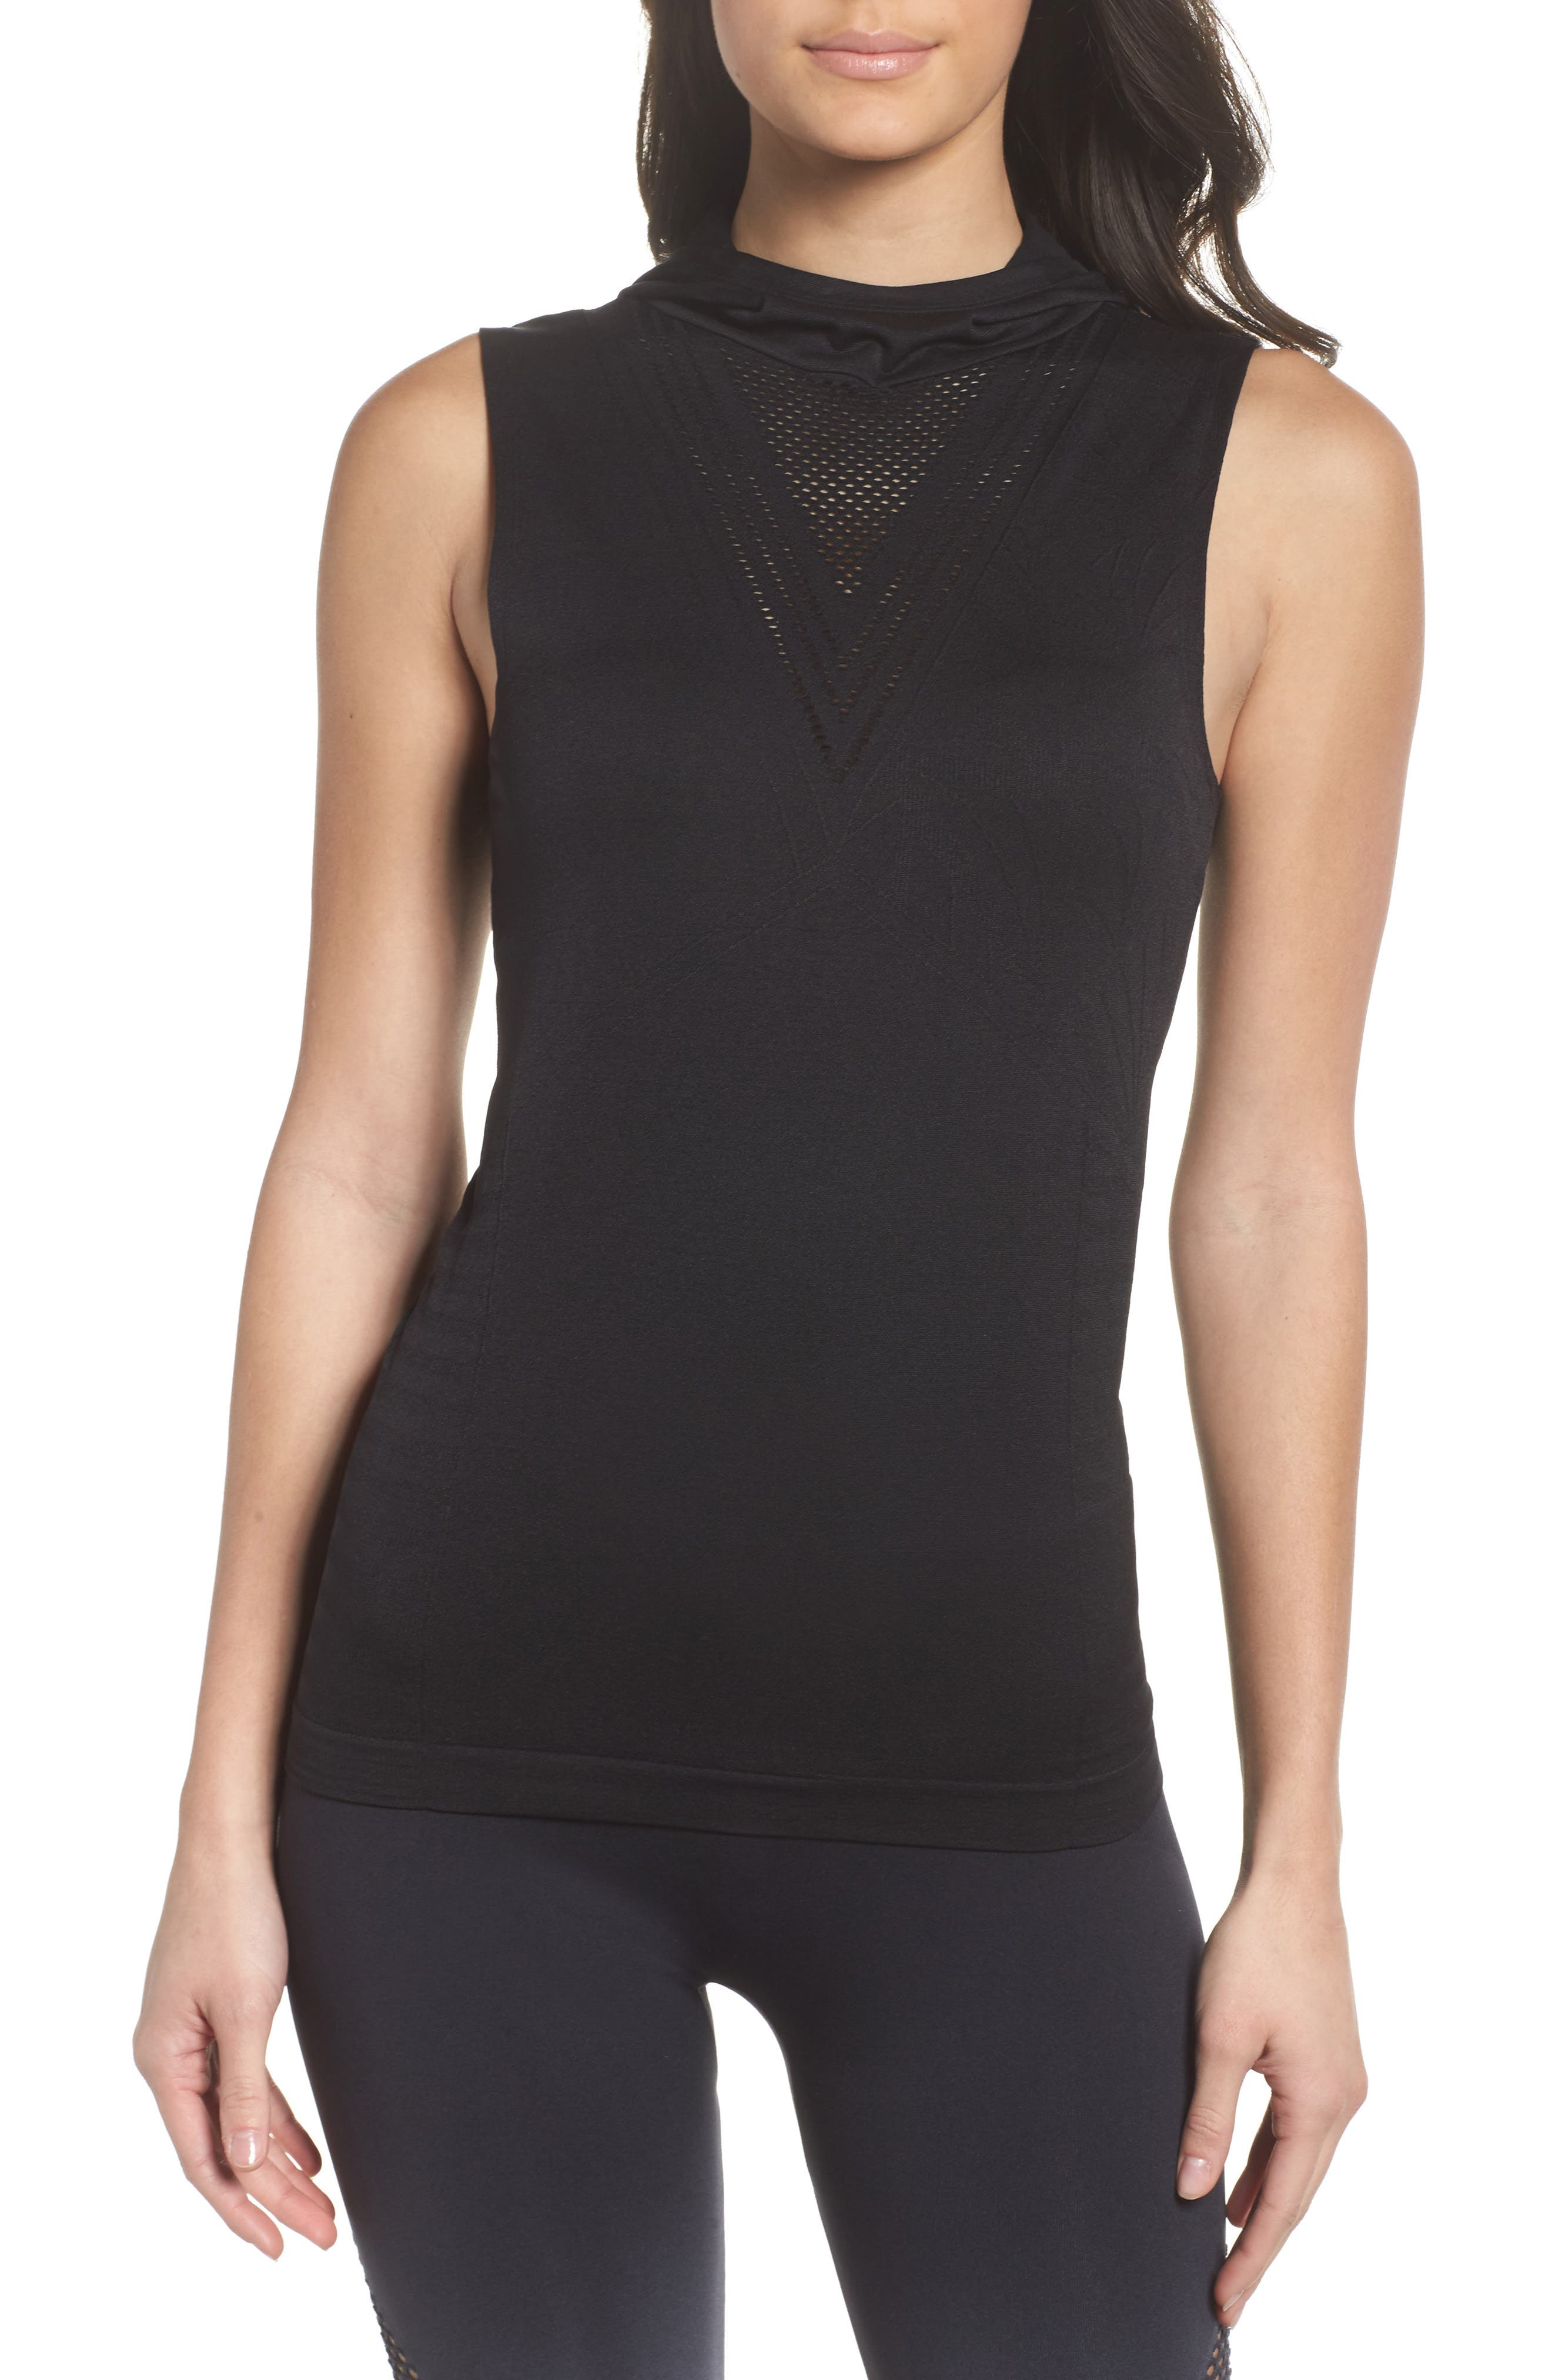 CLIMAWEAR Velocity Sleeveless Hoodie, Main, color, 001